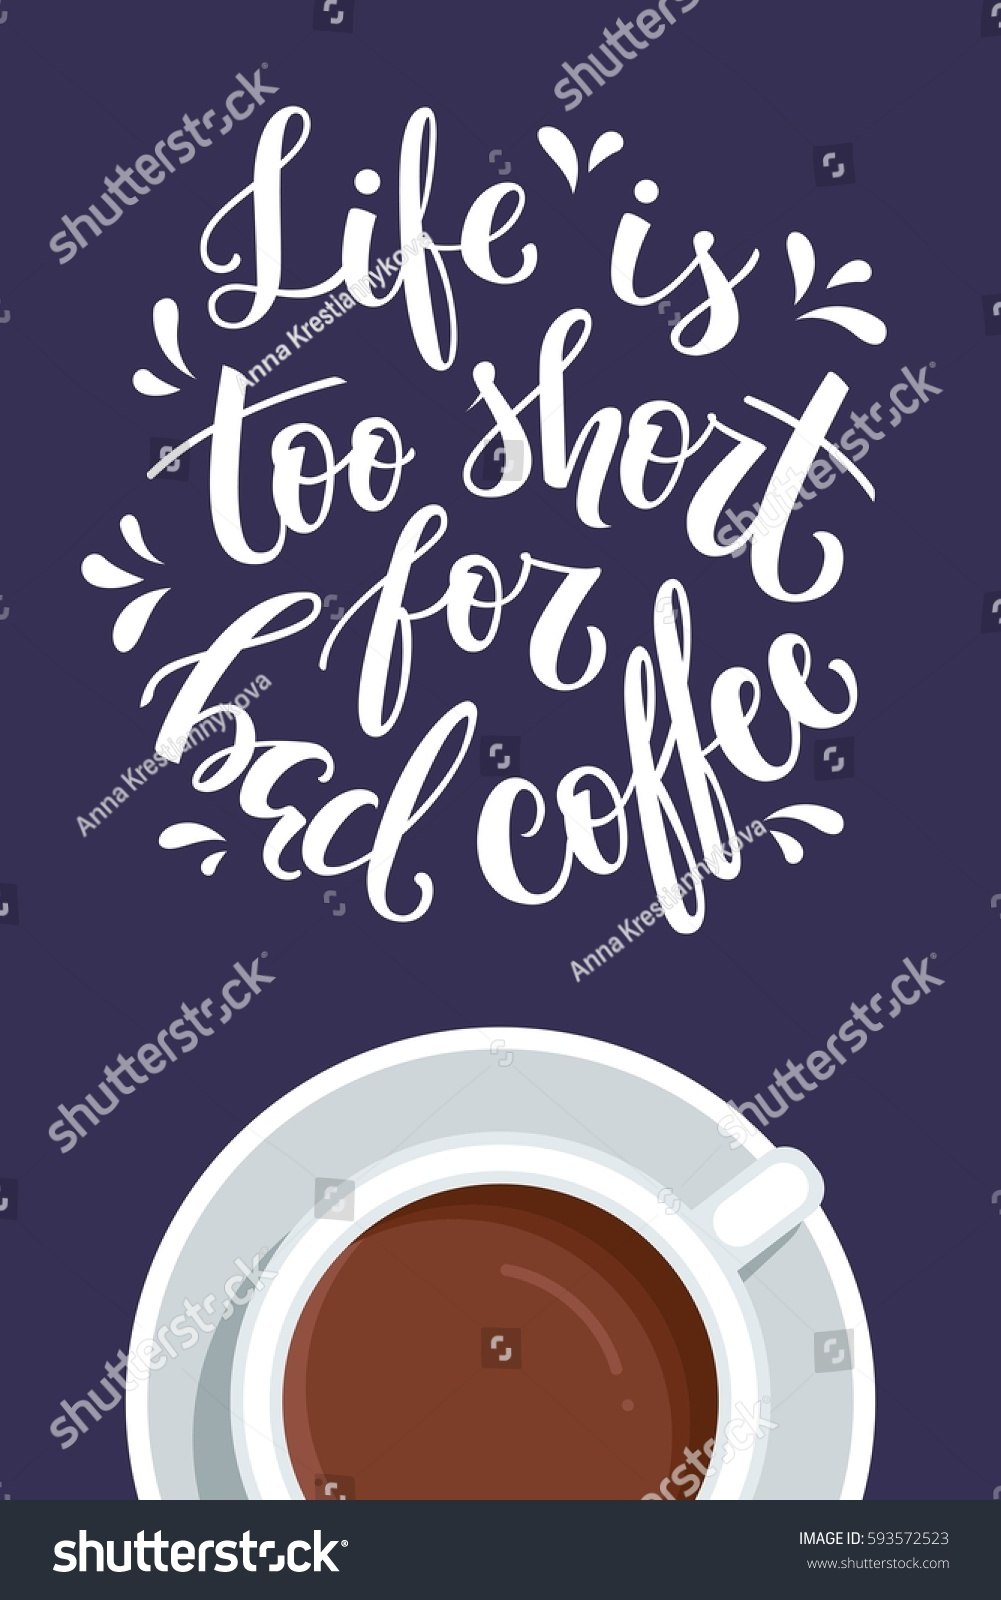 Life Short Bad Coffee Handlettered Coffee Stock Vector Royalty Free